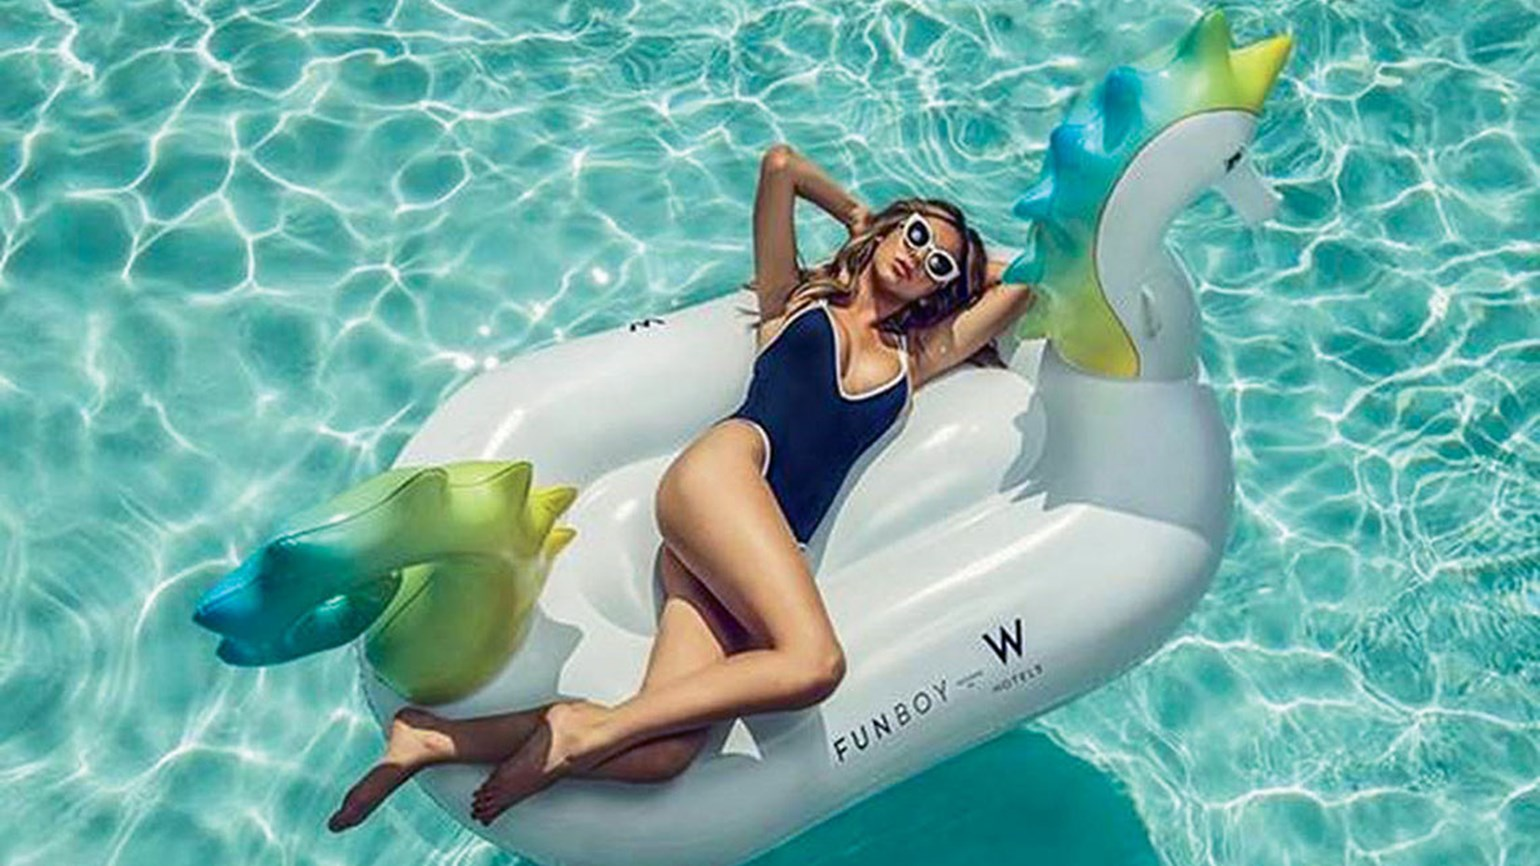 Cool off with 'Heat Wave' promo at W Hotels